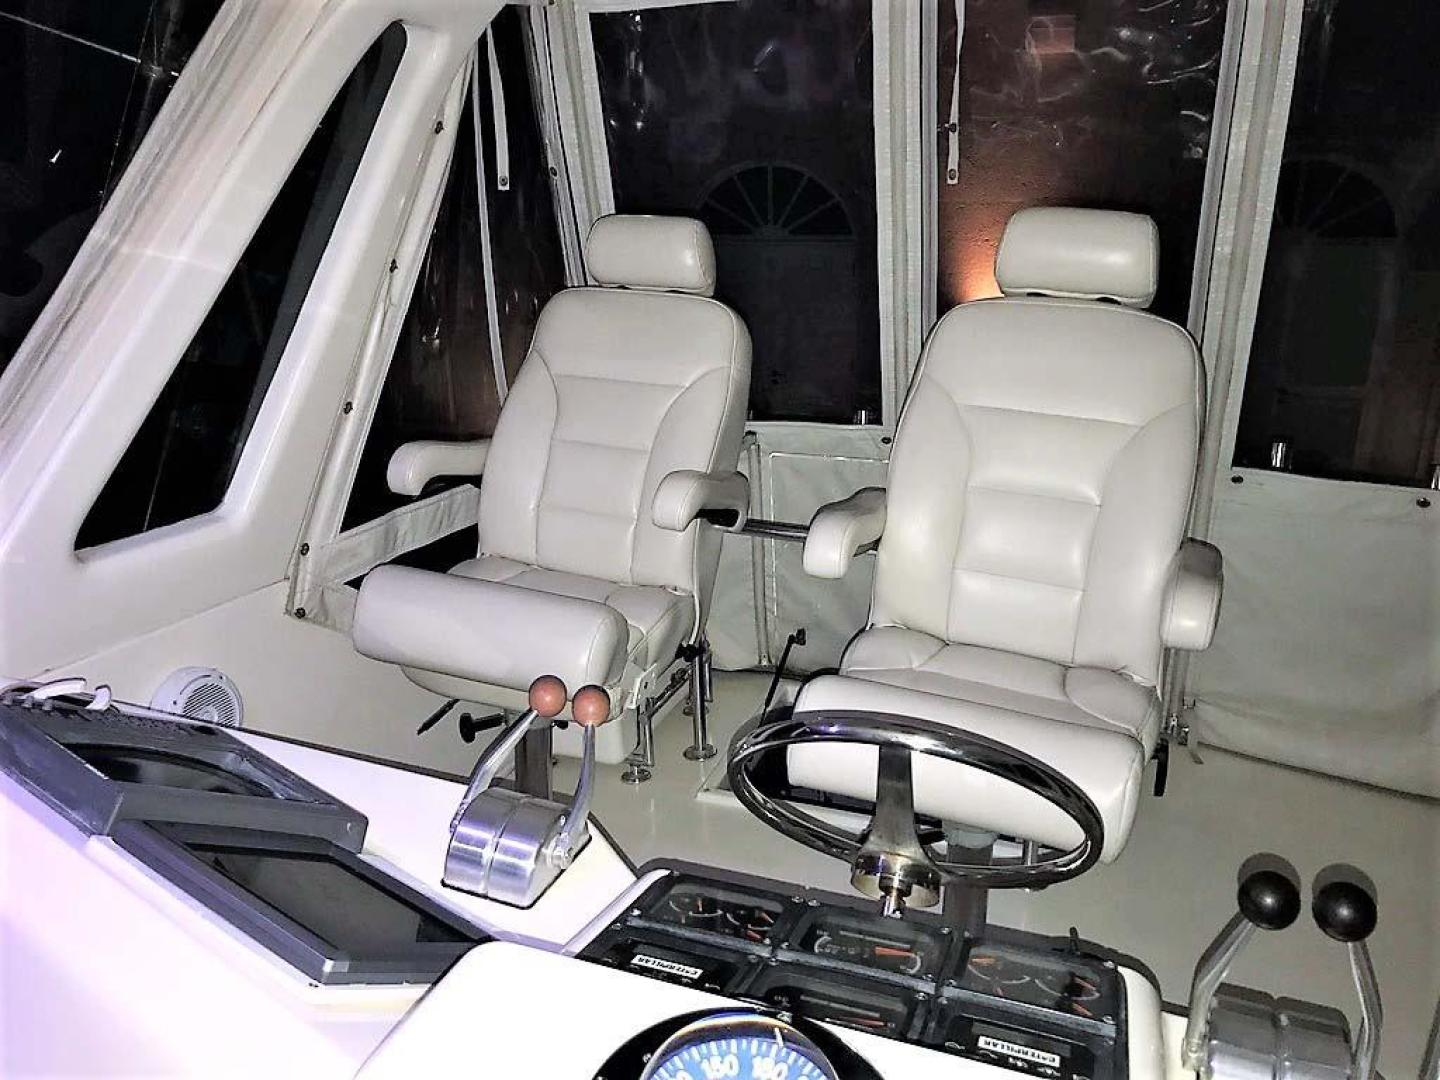 Ocean-Yachts-53-Super-Sport-1998-Made-in-the-Shade-Stuart-United-States-Helm-Seats-929983